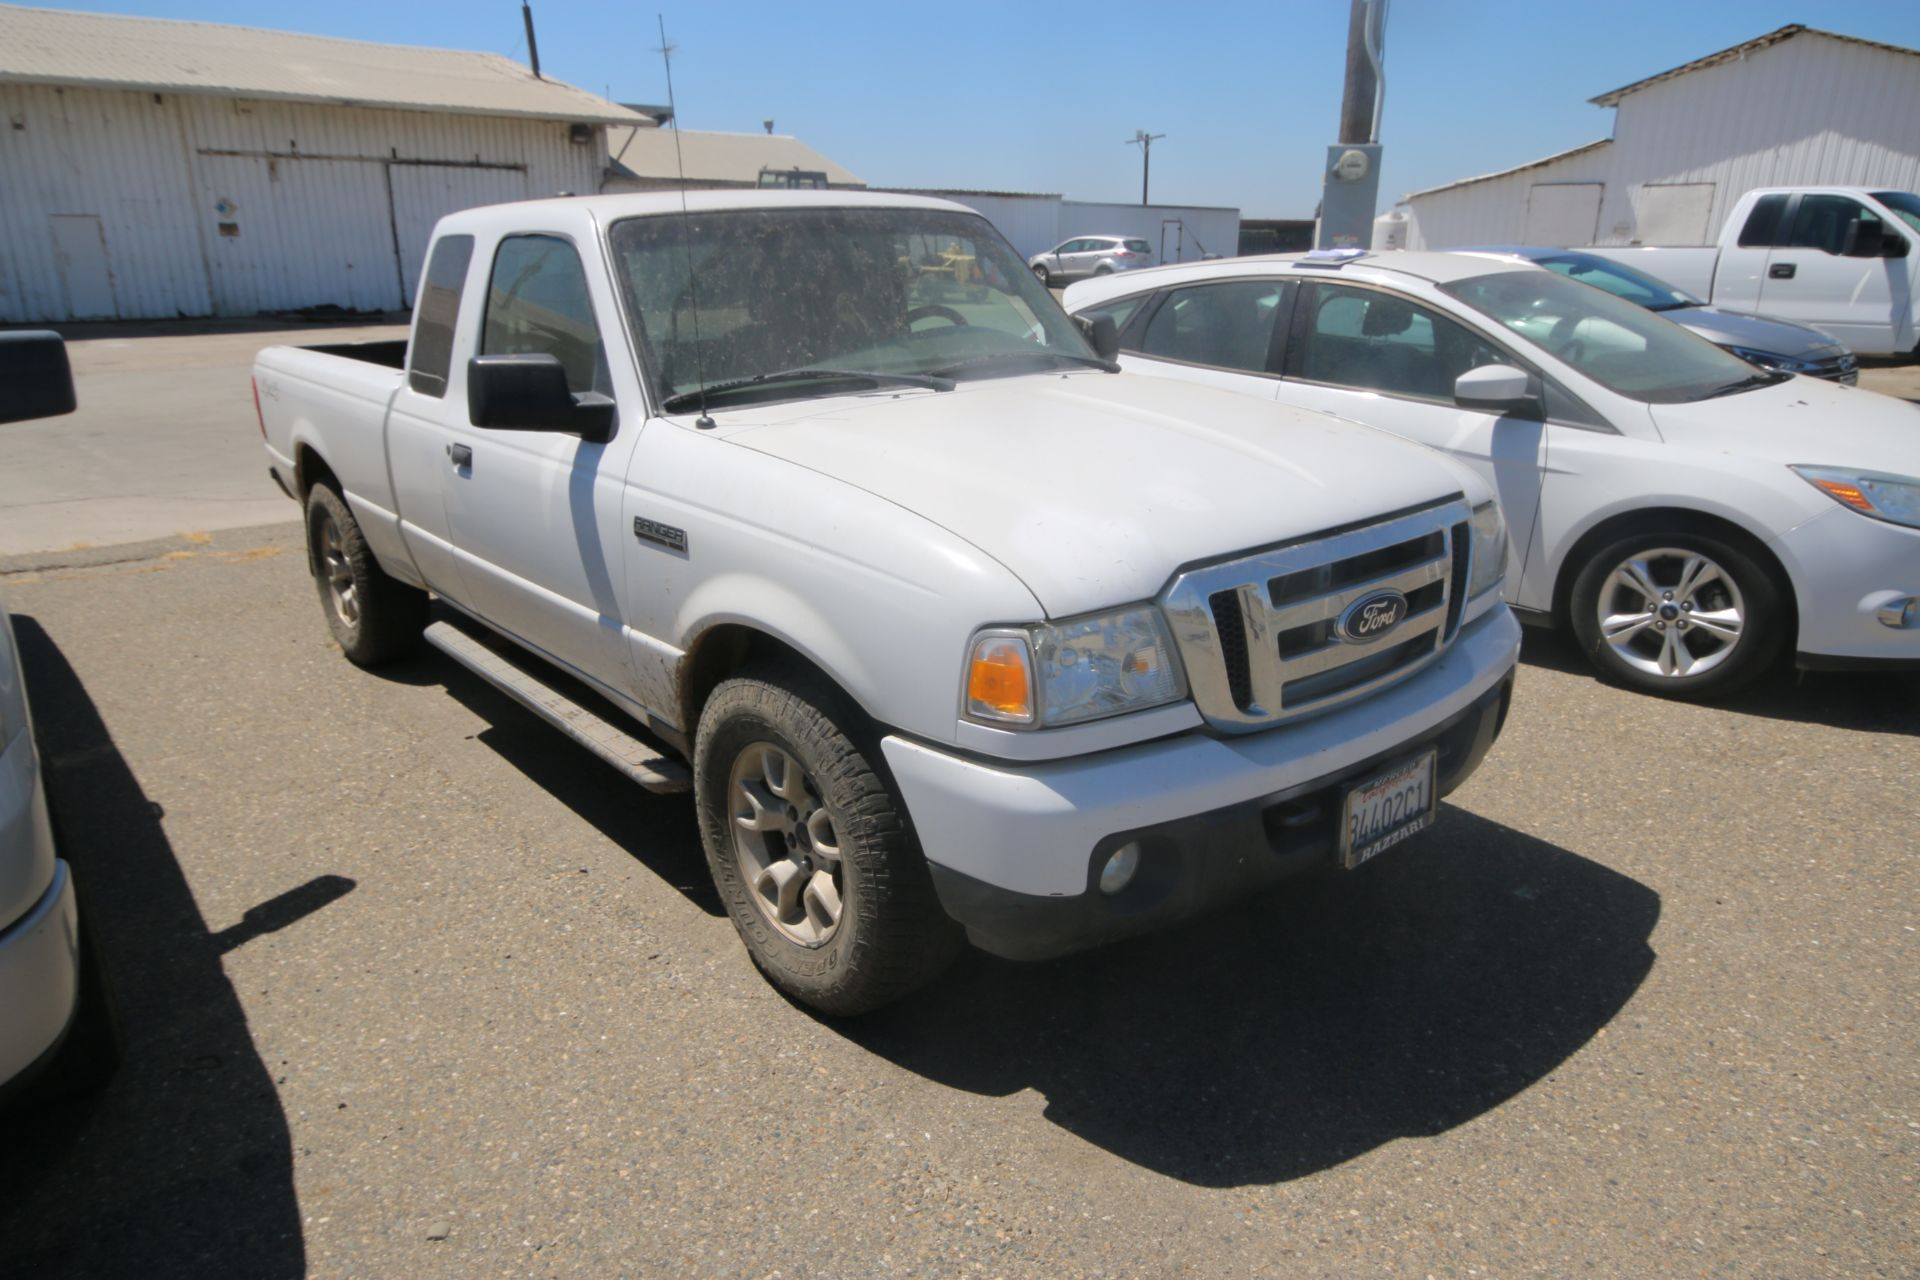 2011 White Ford Ranger Pick Up Truck, VIN #: 1FTLR4FE8BPA37482, with 160,443 Miles, Started Up as of - Image 2 of 24